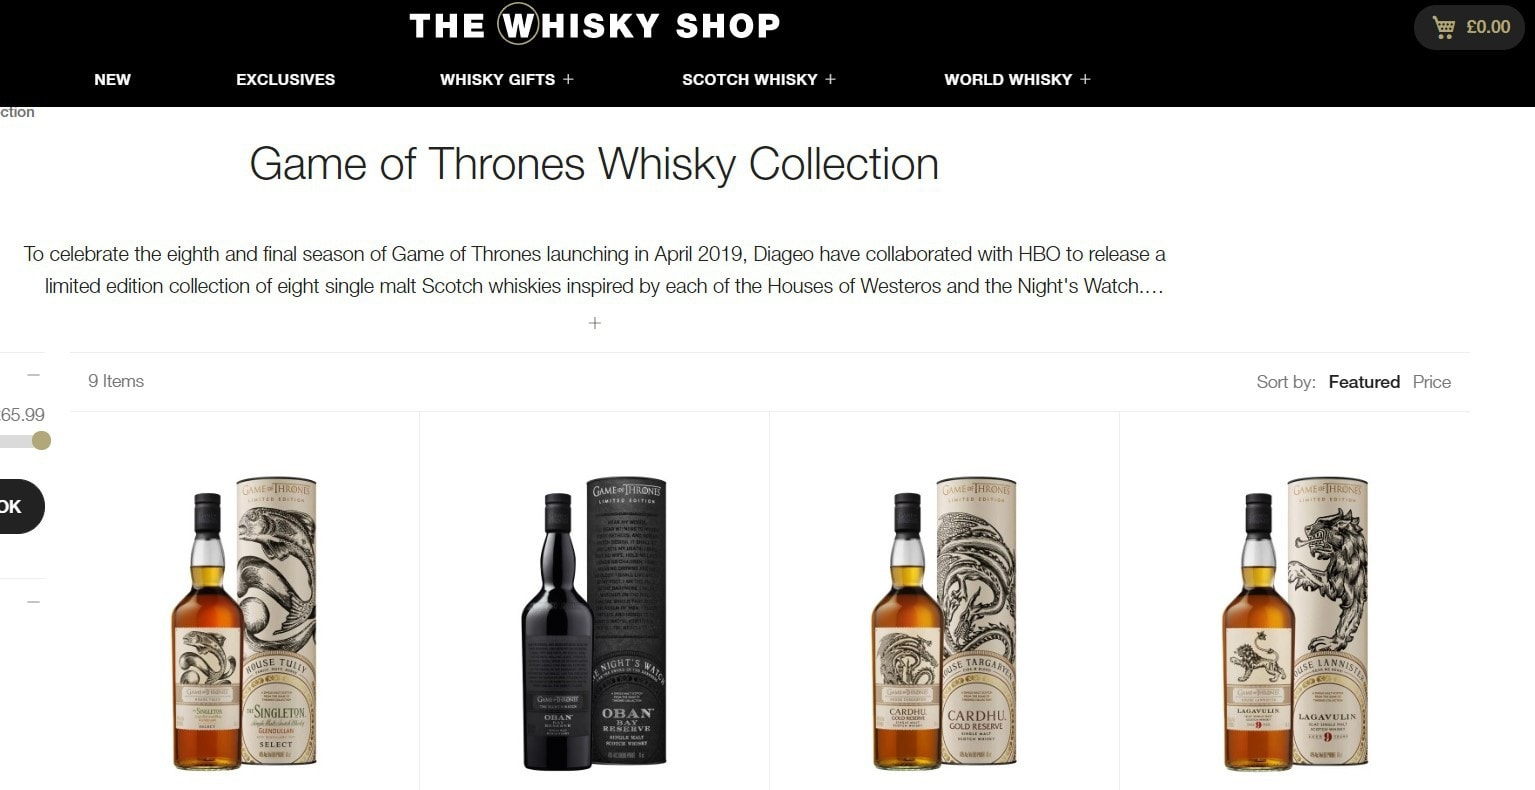 The Whisky Shop Game Of Thrones collection